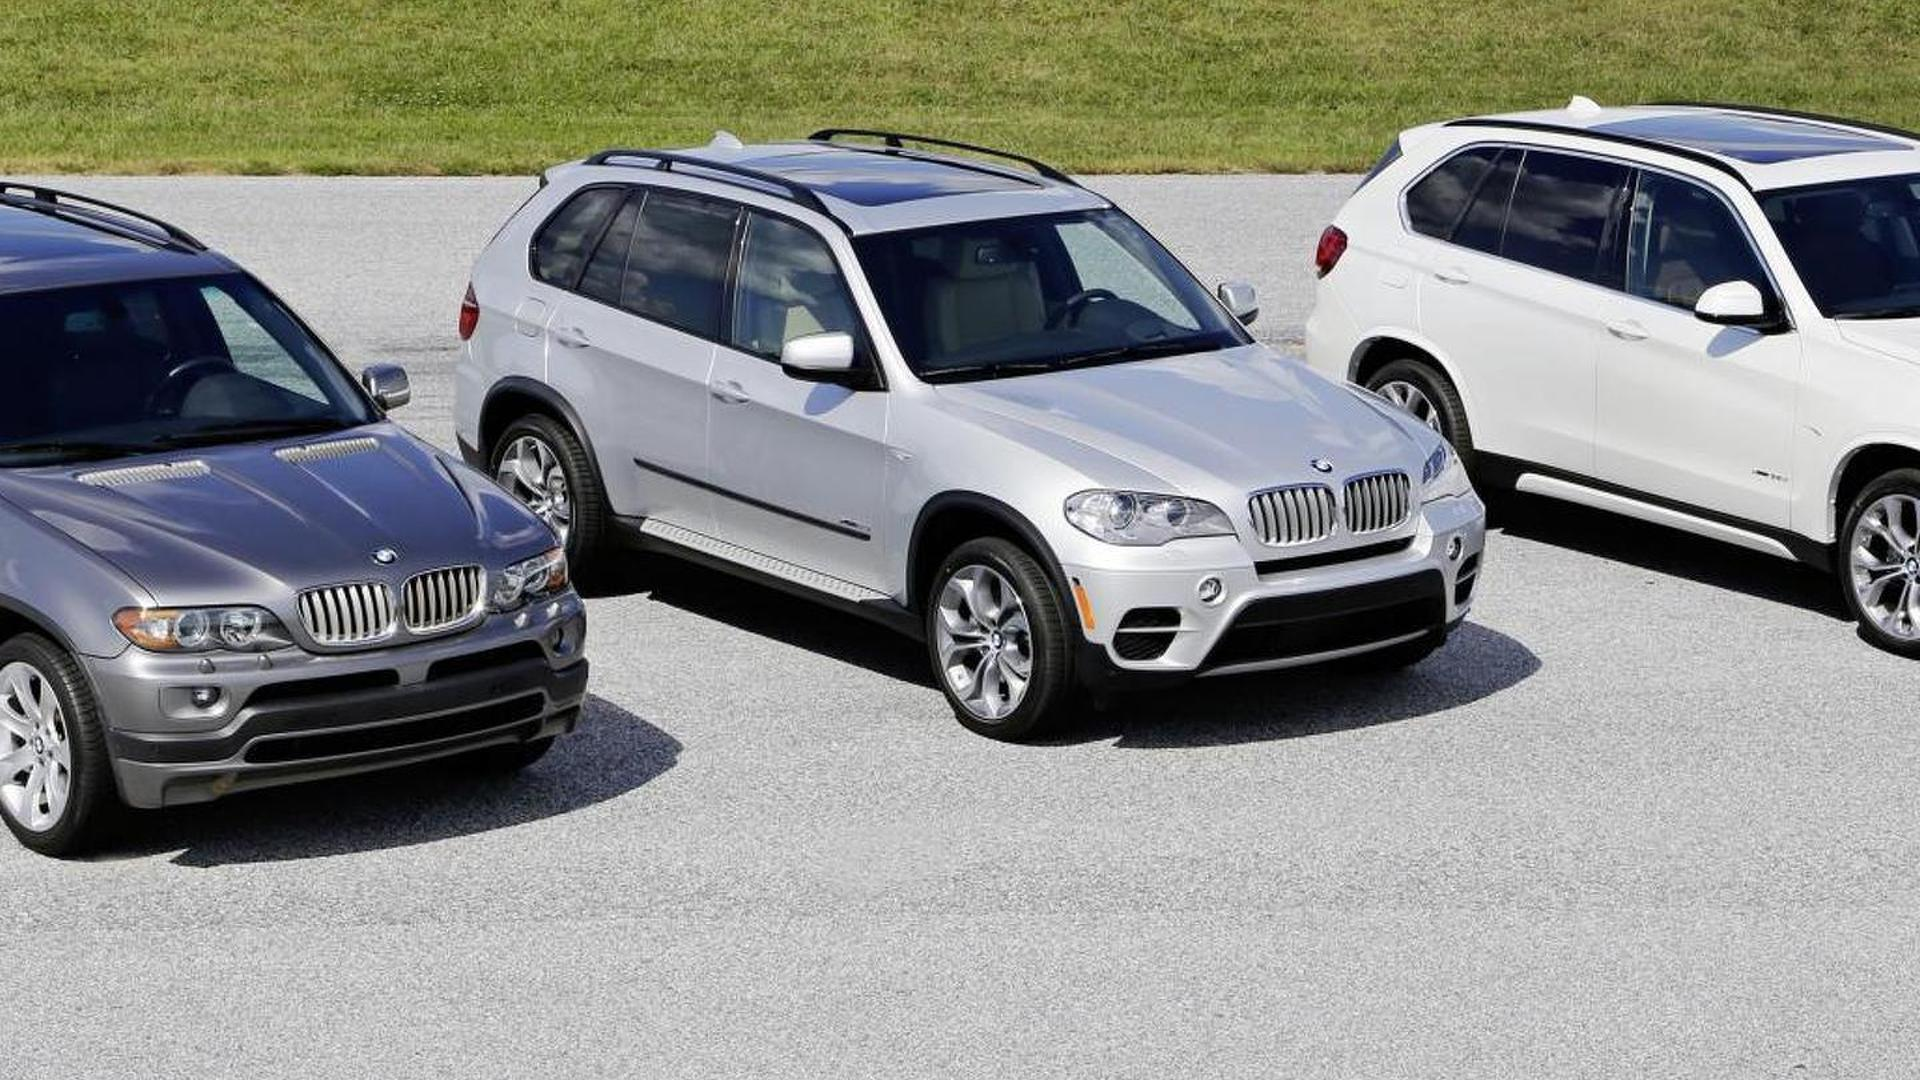 BMW celebrates the 15th anniversary of the X5